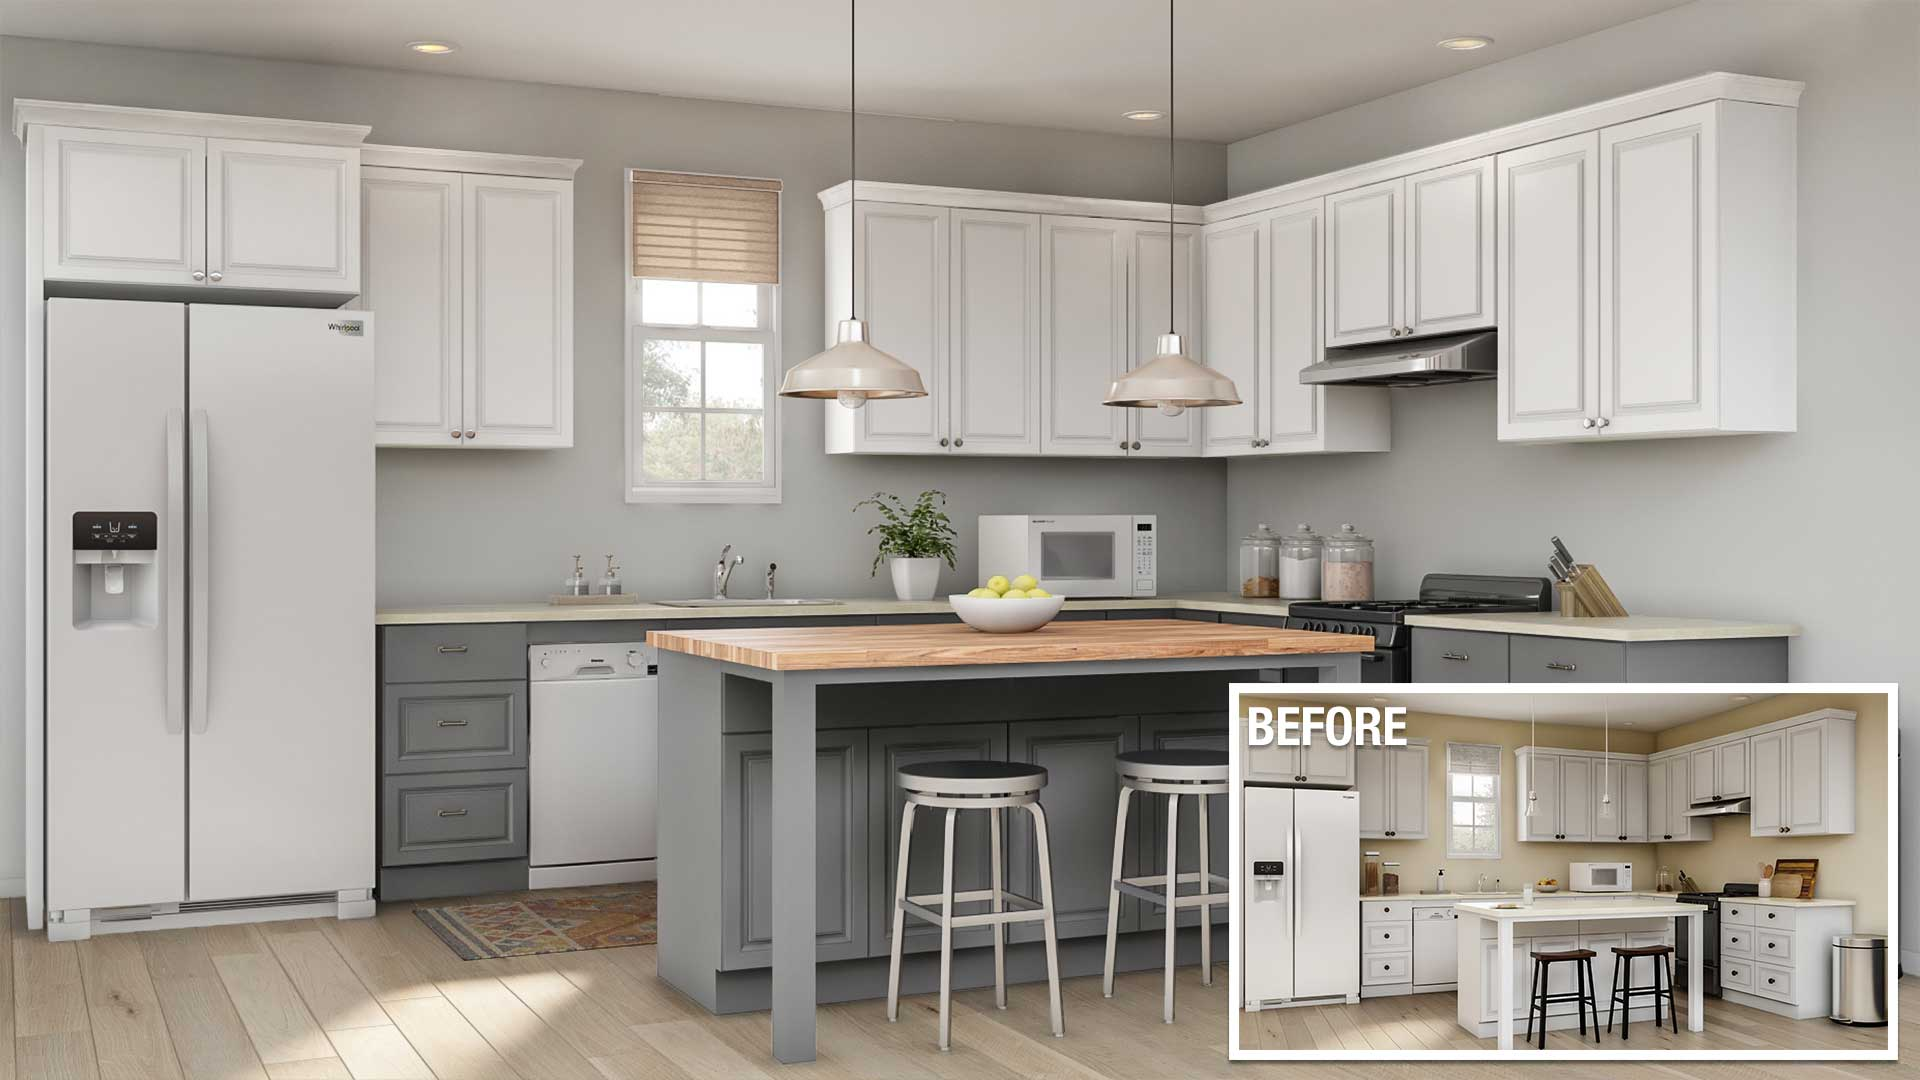 hight resolution of a before and after of a minor kitchen remodel